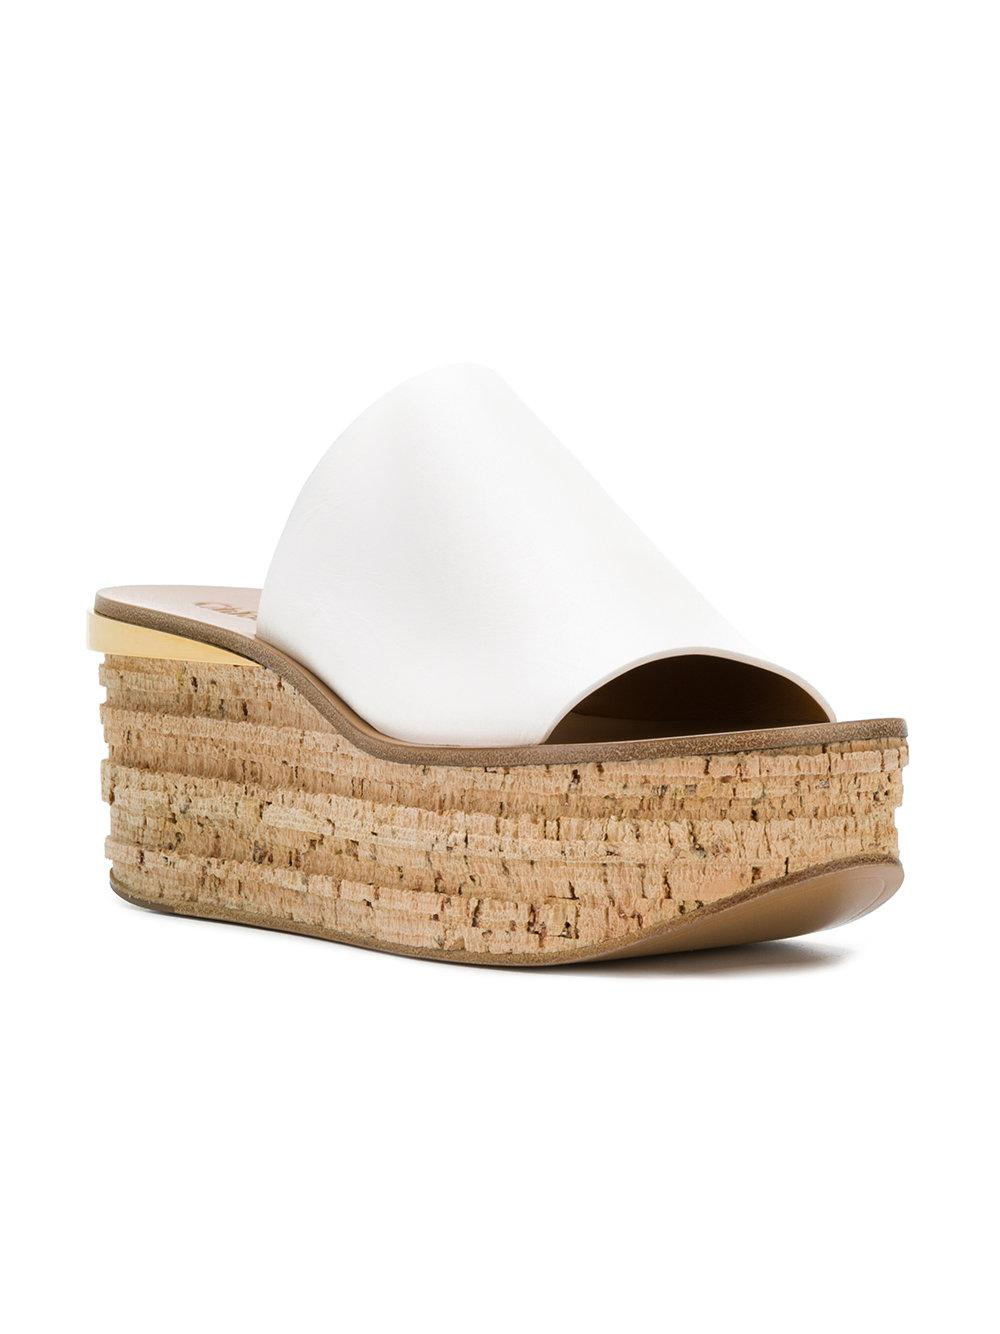 714c960454d5 Lyst - Chloé Camille Wedge Mules in White - Save 58%